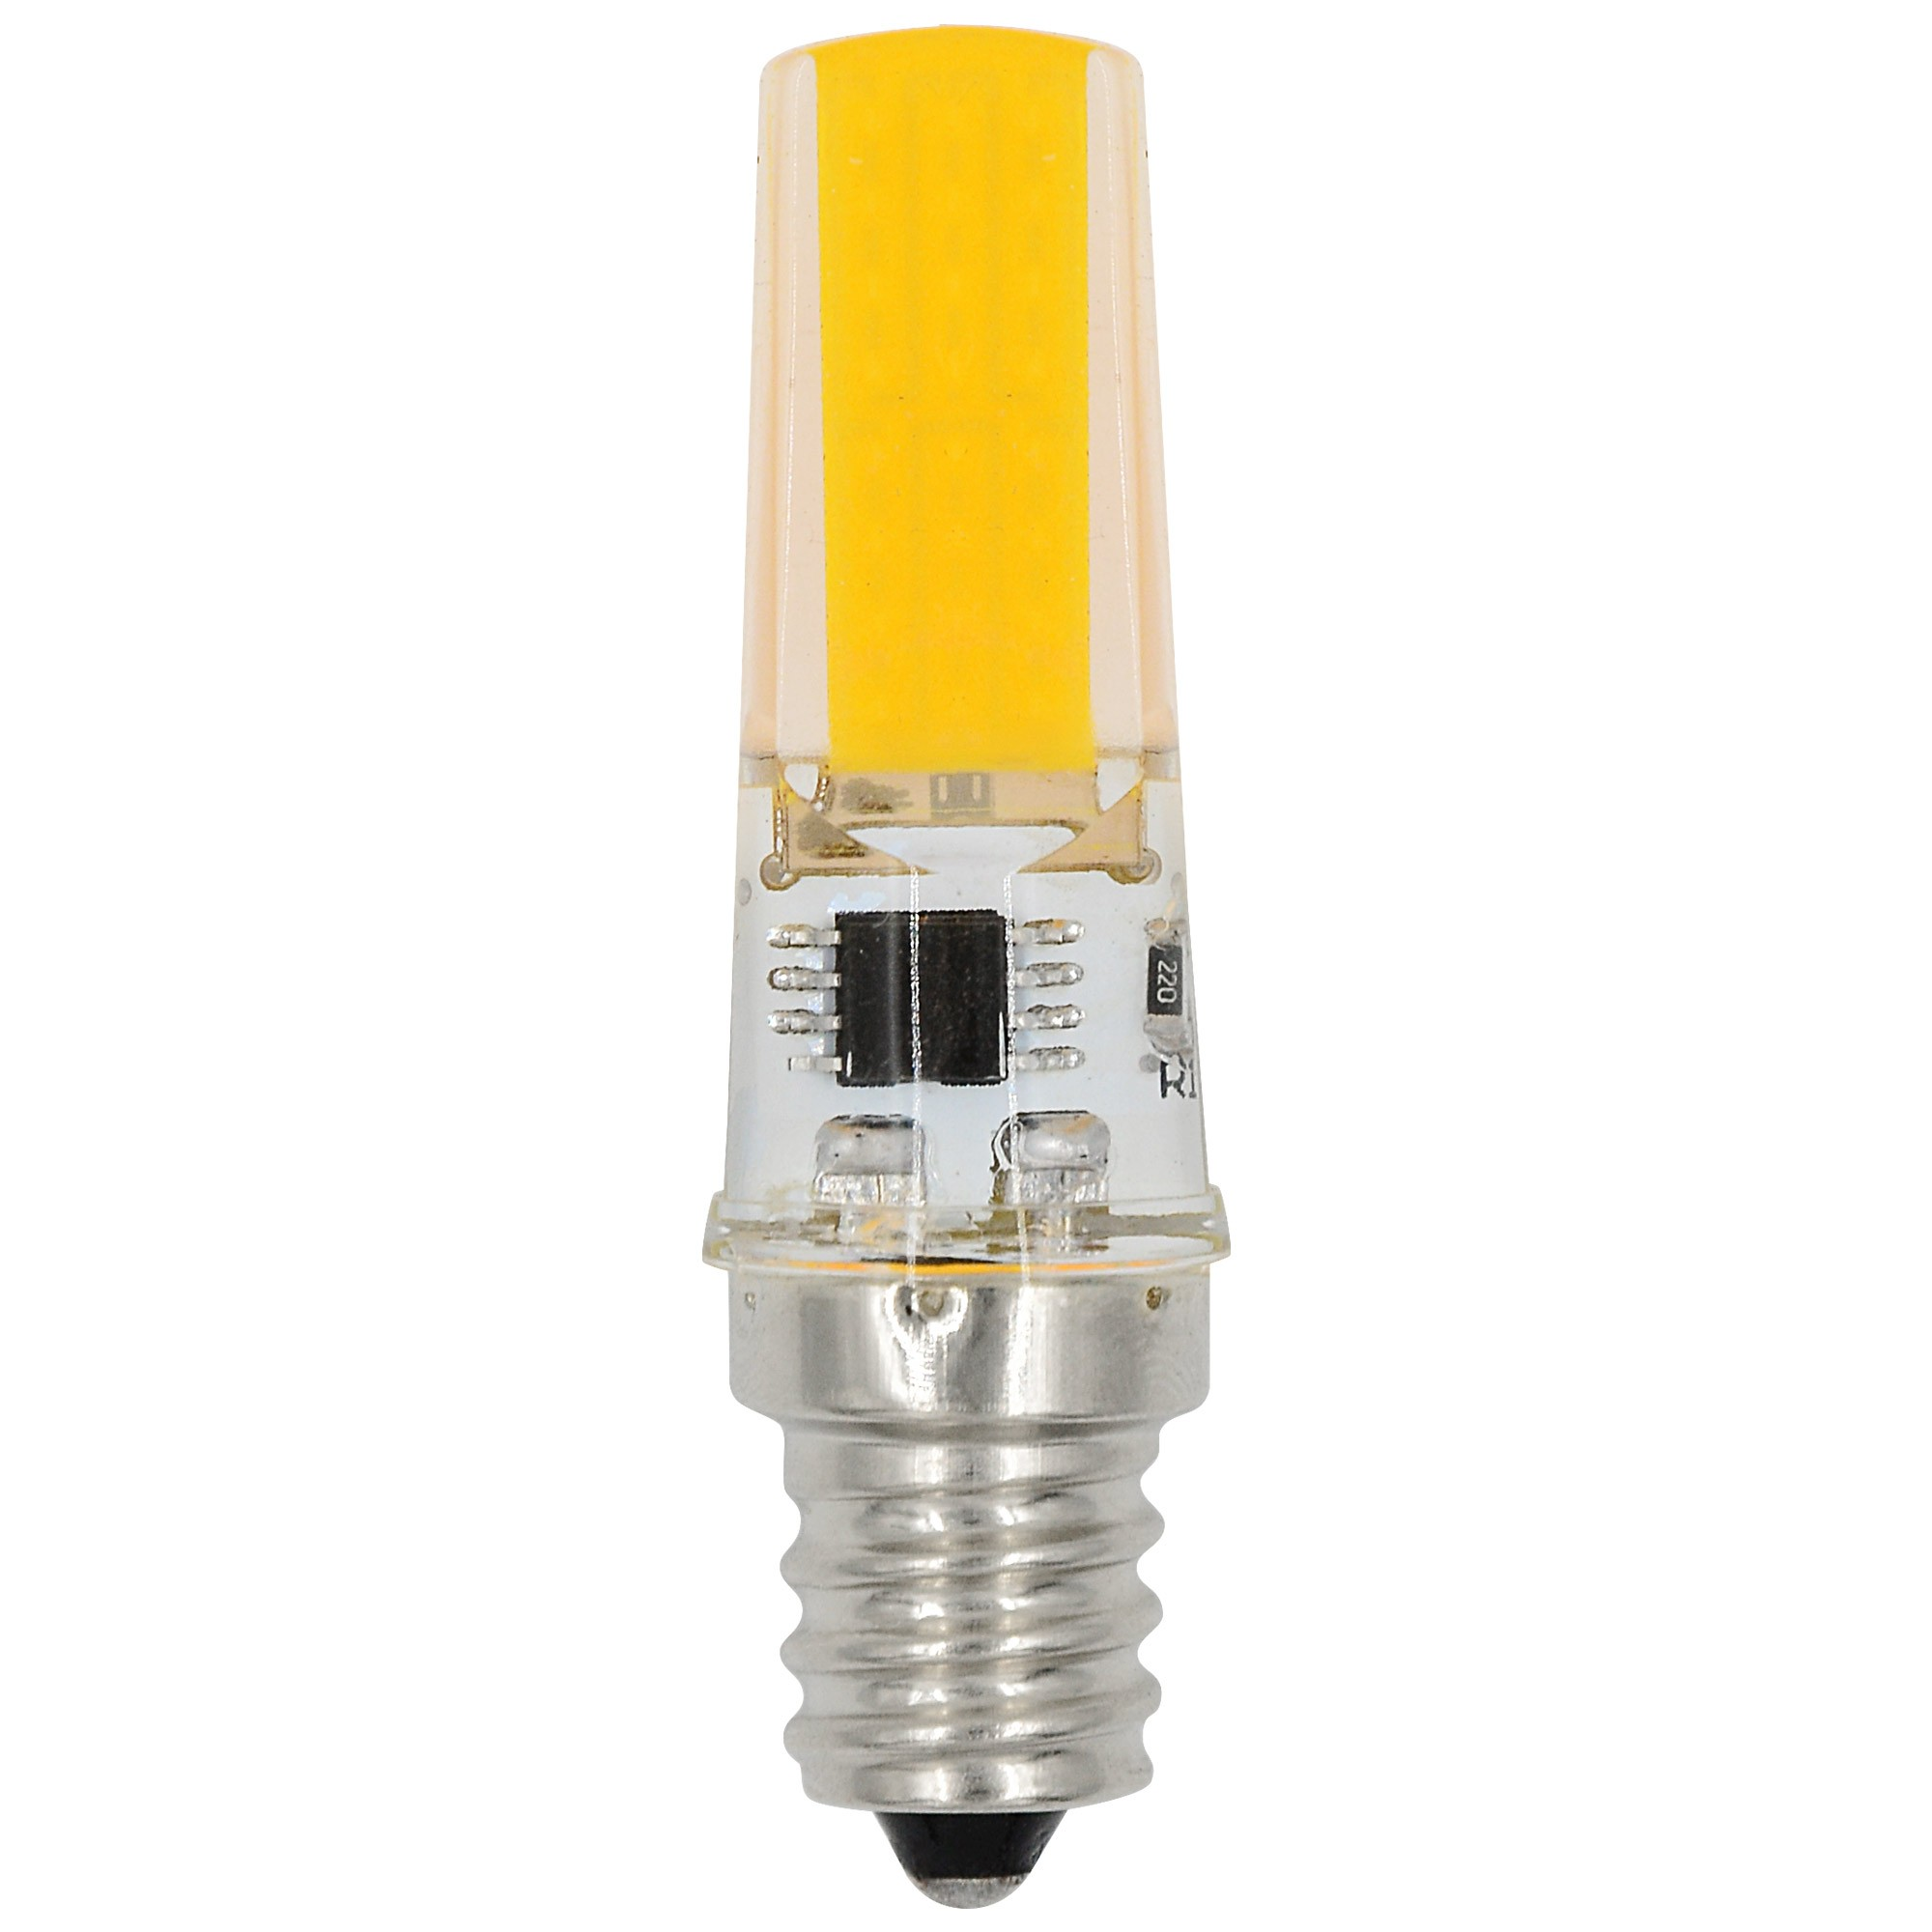 Mengsled Mengs E12 3w Led Light Cob Led Bulb Lamp Ac 220 240v In Warm White Cool White Energy